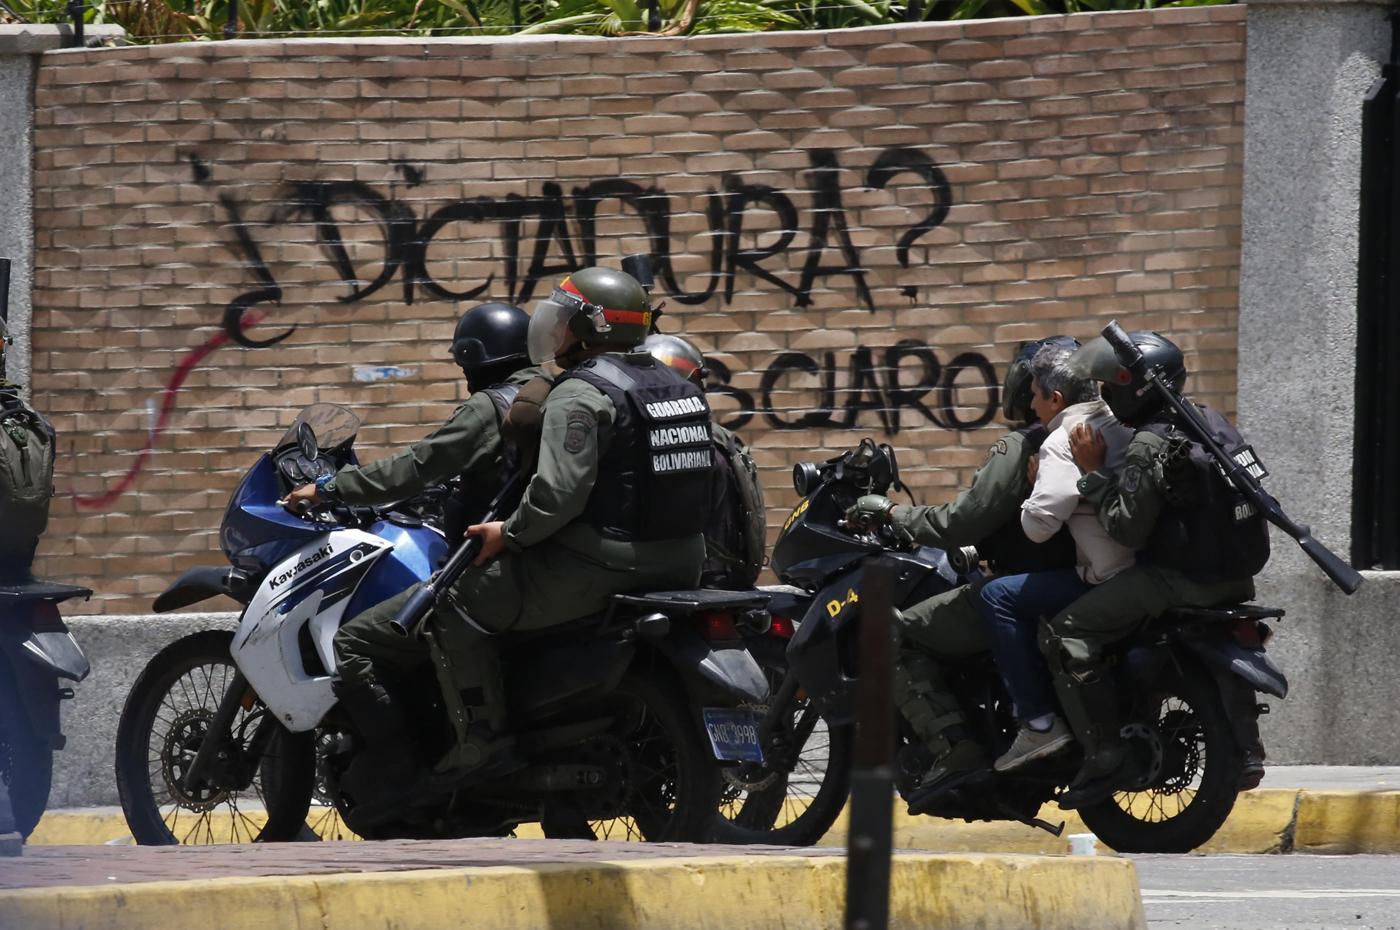 "Soldiers on motorcycles carry a person past a sign that says ""Dictatorship?"" as the Constituent Assembly election was being carried out in Caracas, Venezuela, July 30, 2017. REUTERS/Carlos Garcia Rawlins"